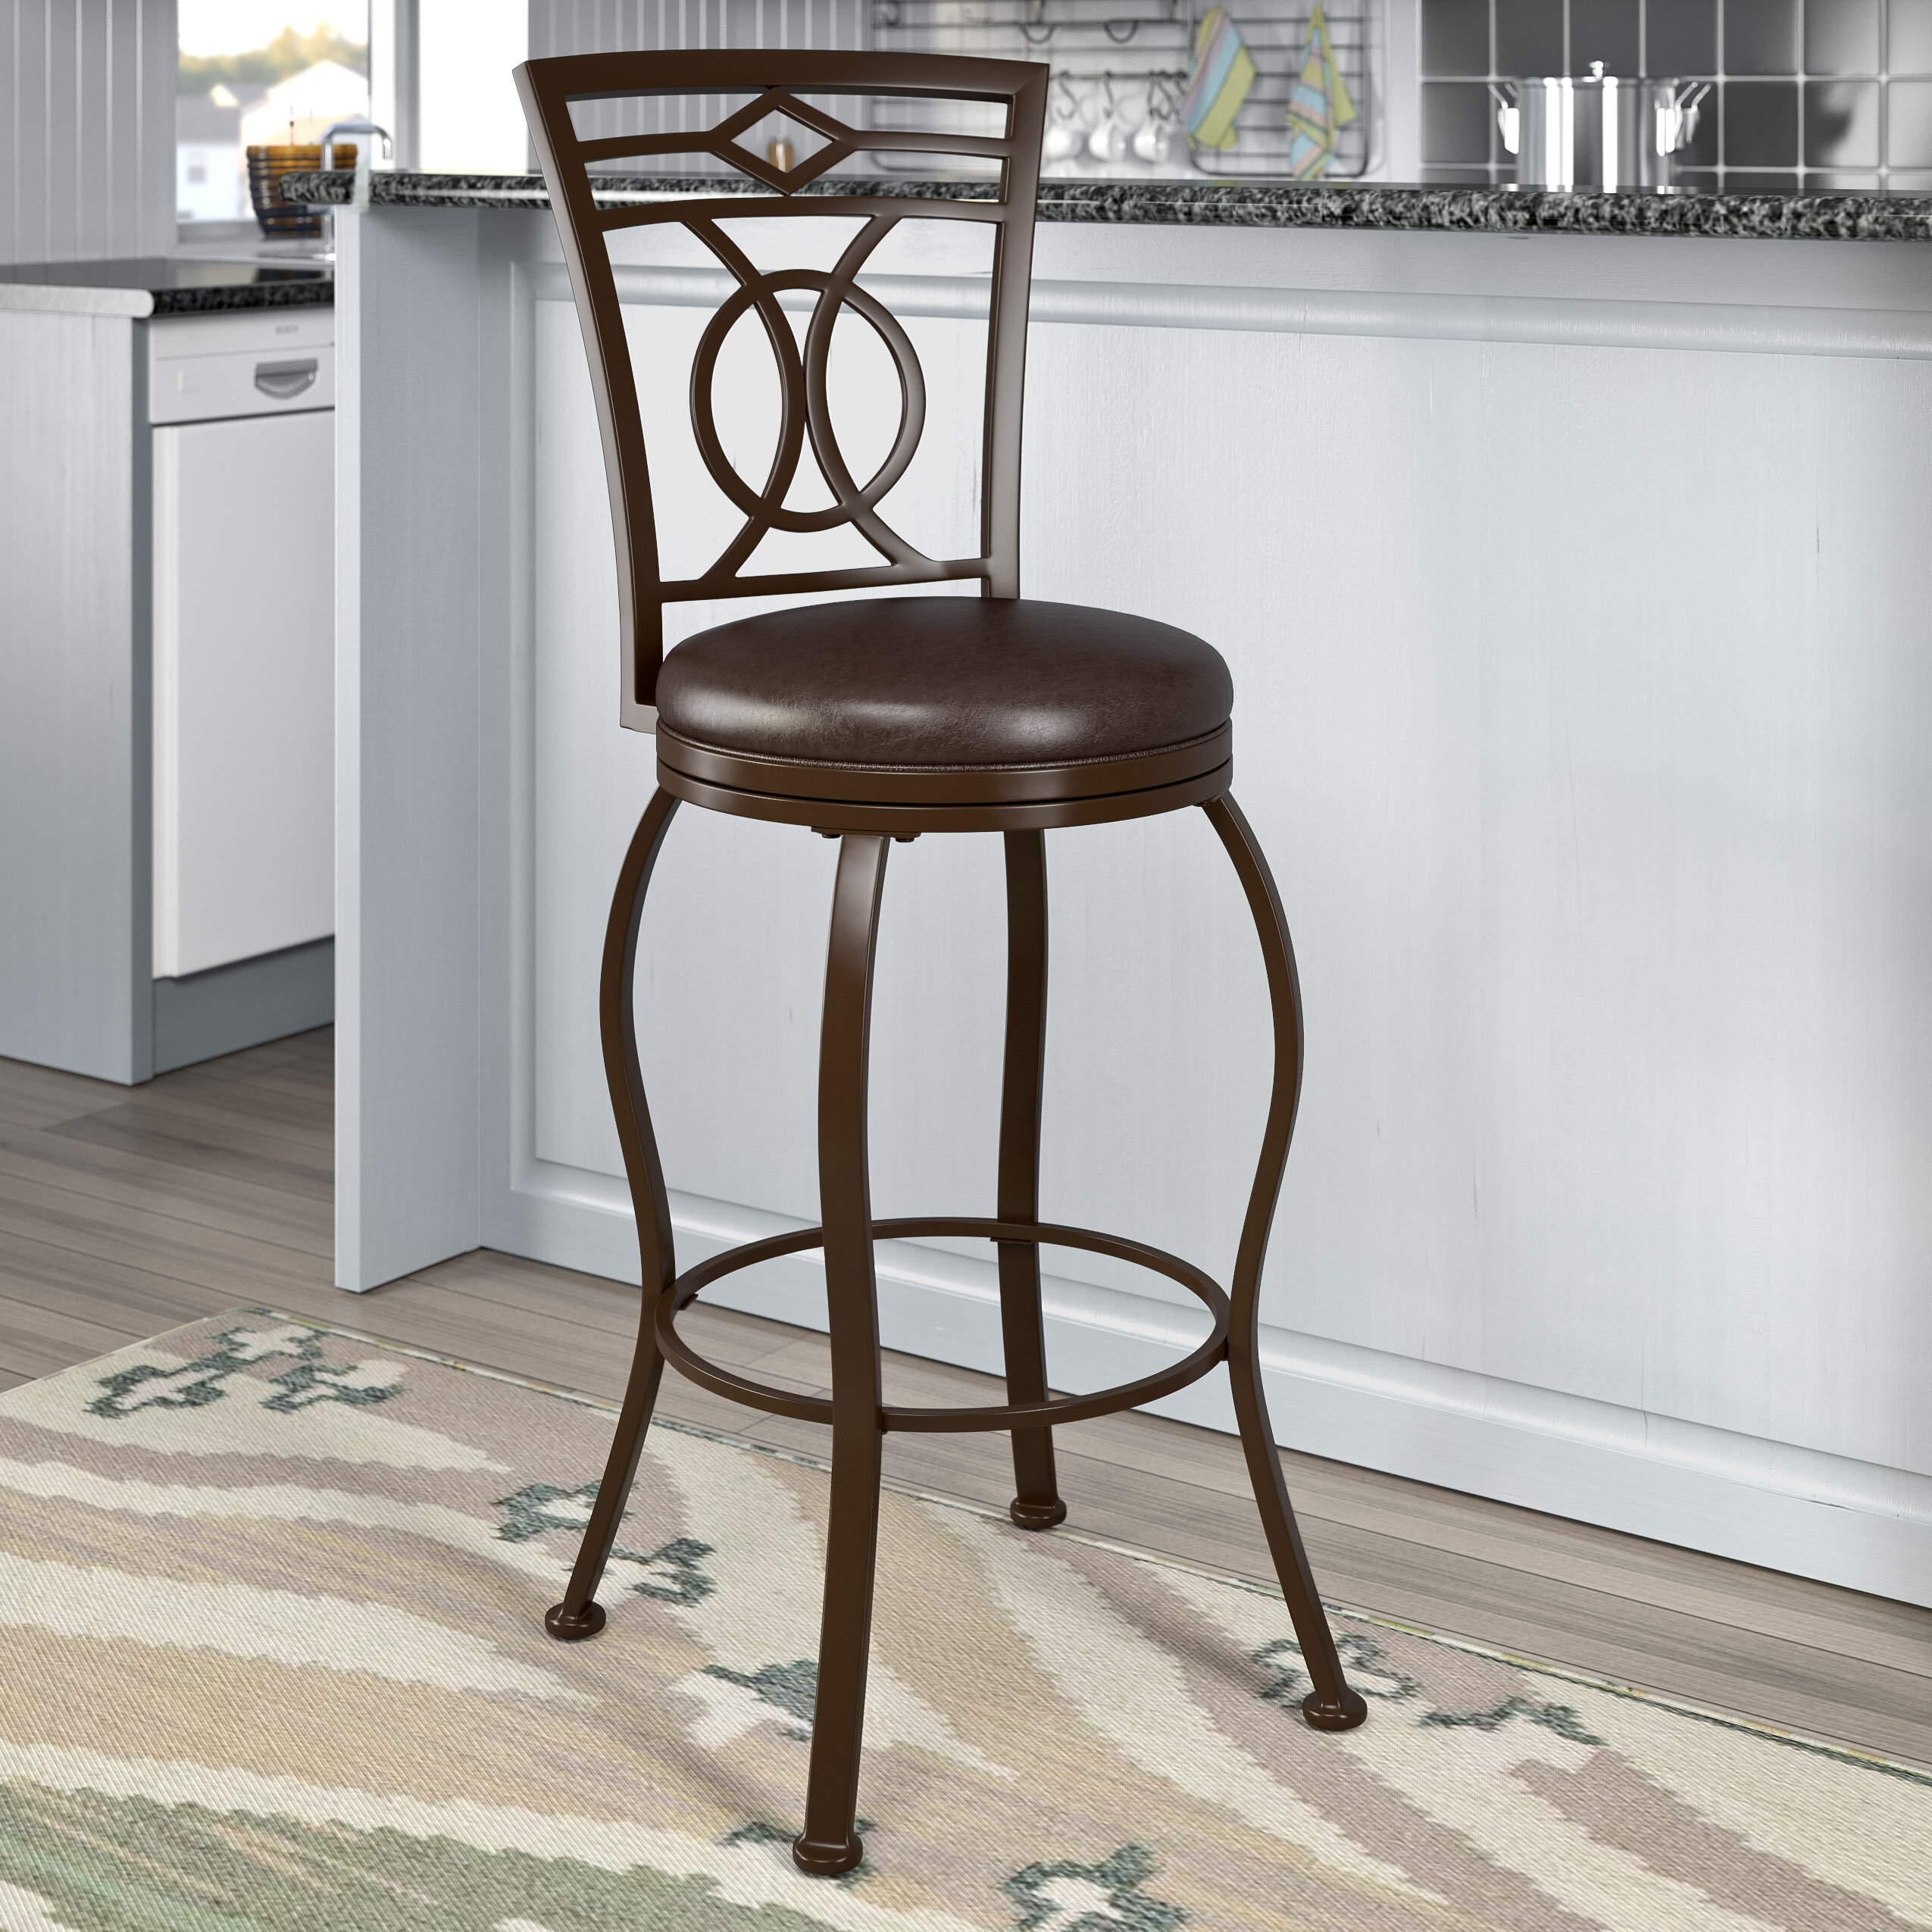 Bar Stools Sale Youll Love Wayfairca